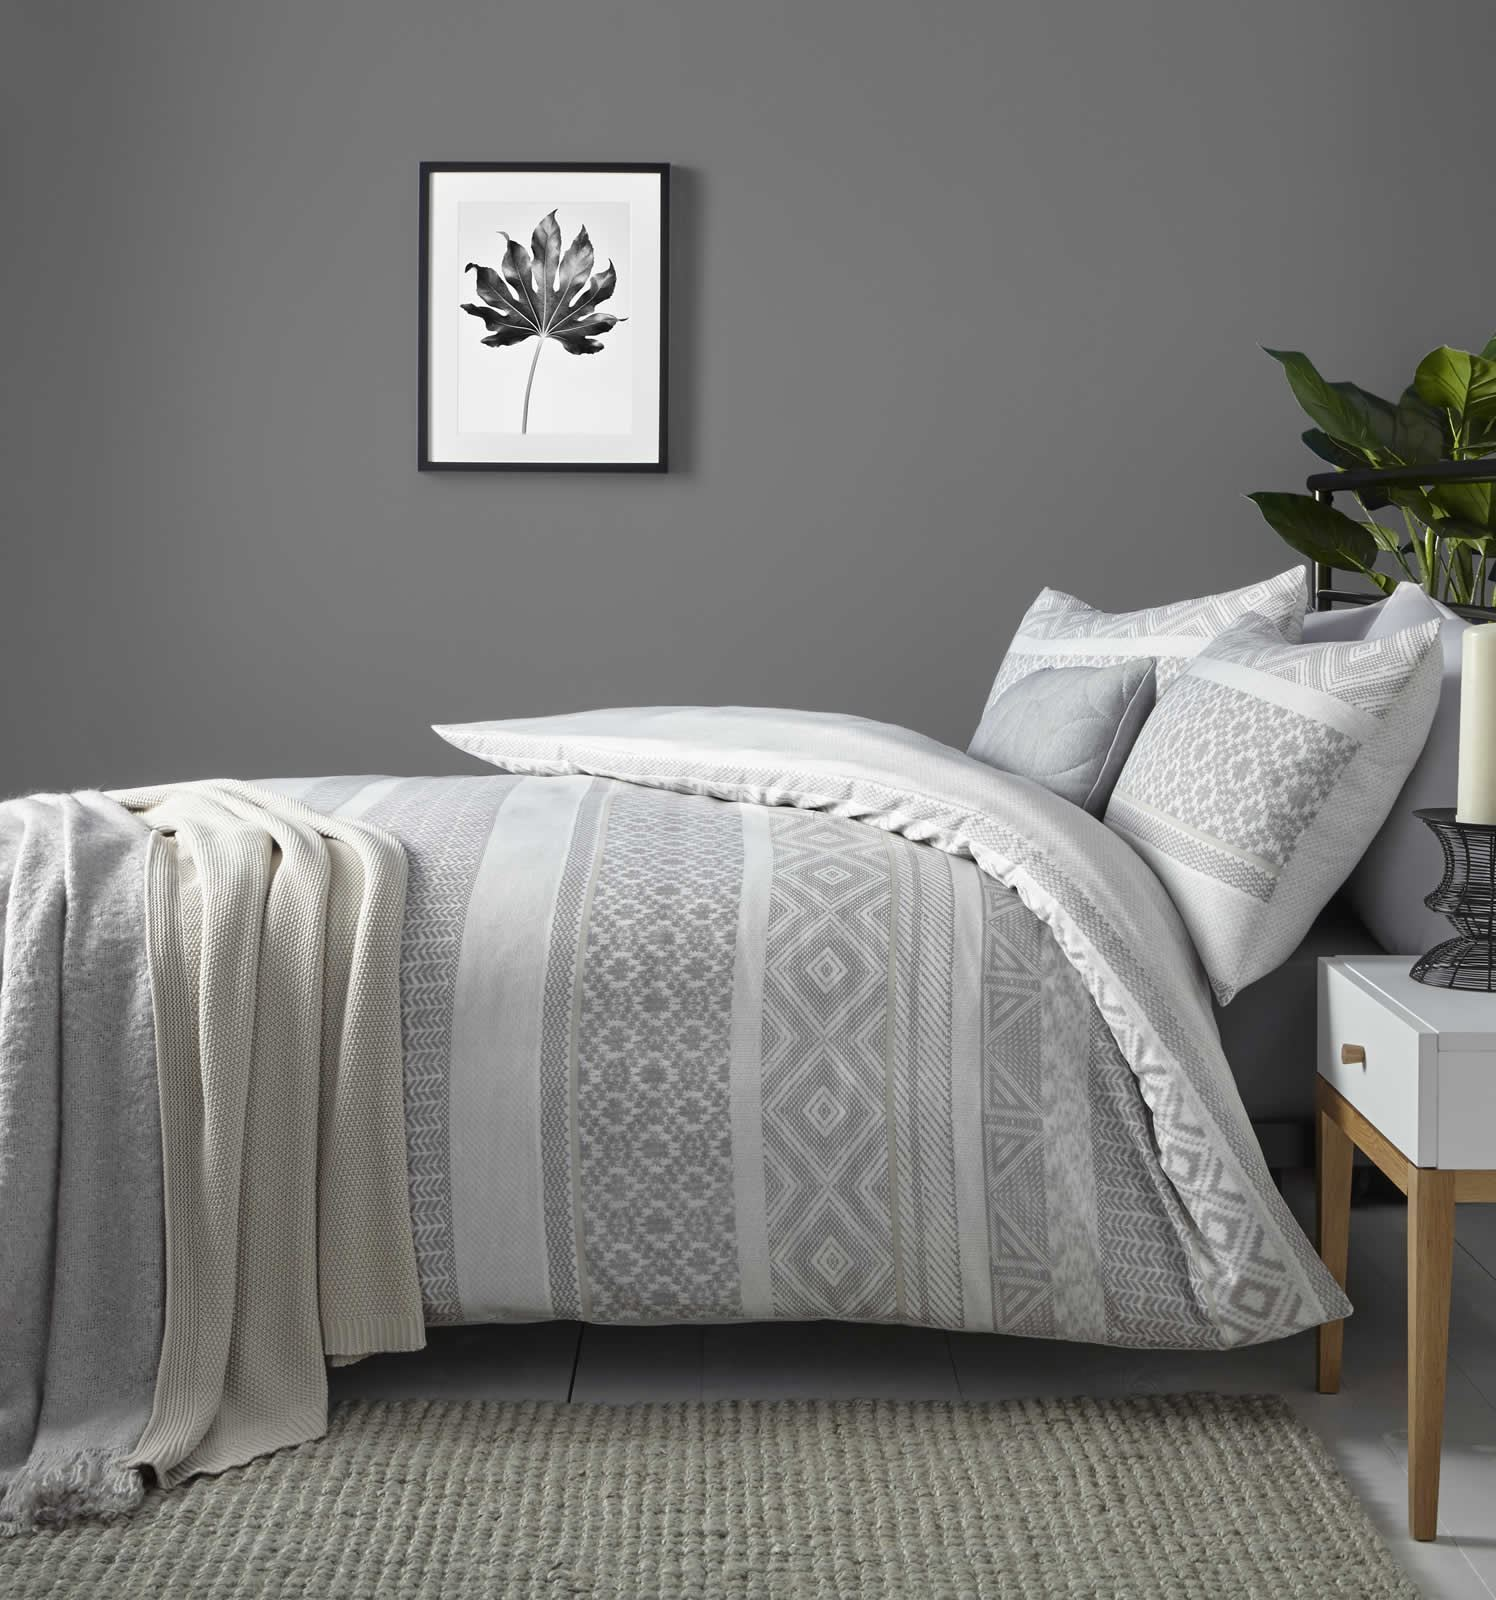 european set soft grey flax covers linen first and gray queen cover light white double quilt cotton doona dark most in duvet rate size australia bedding single